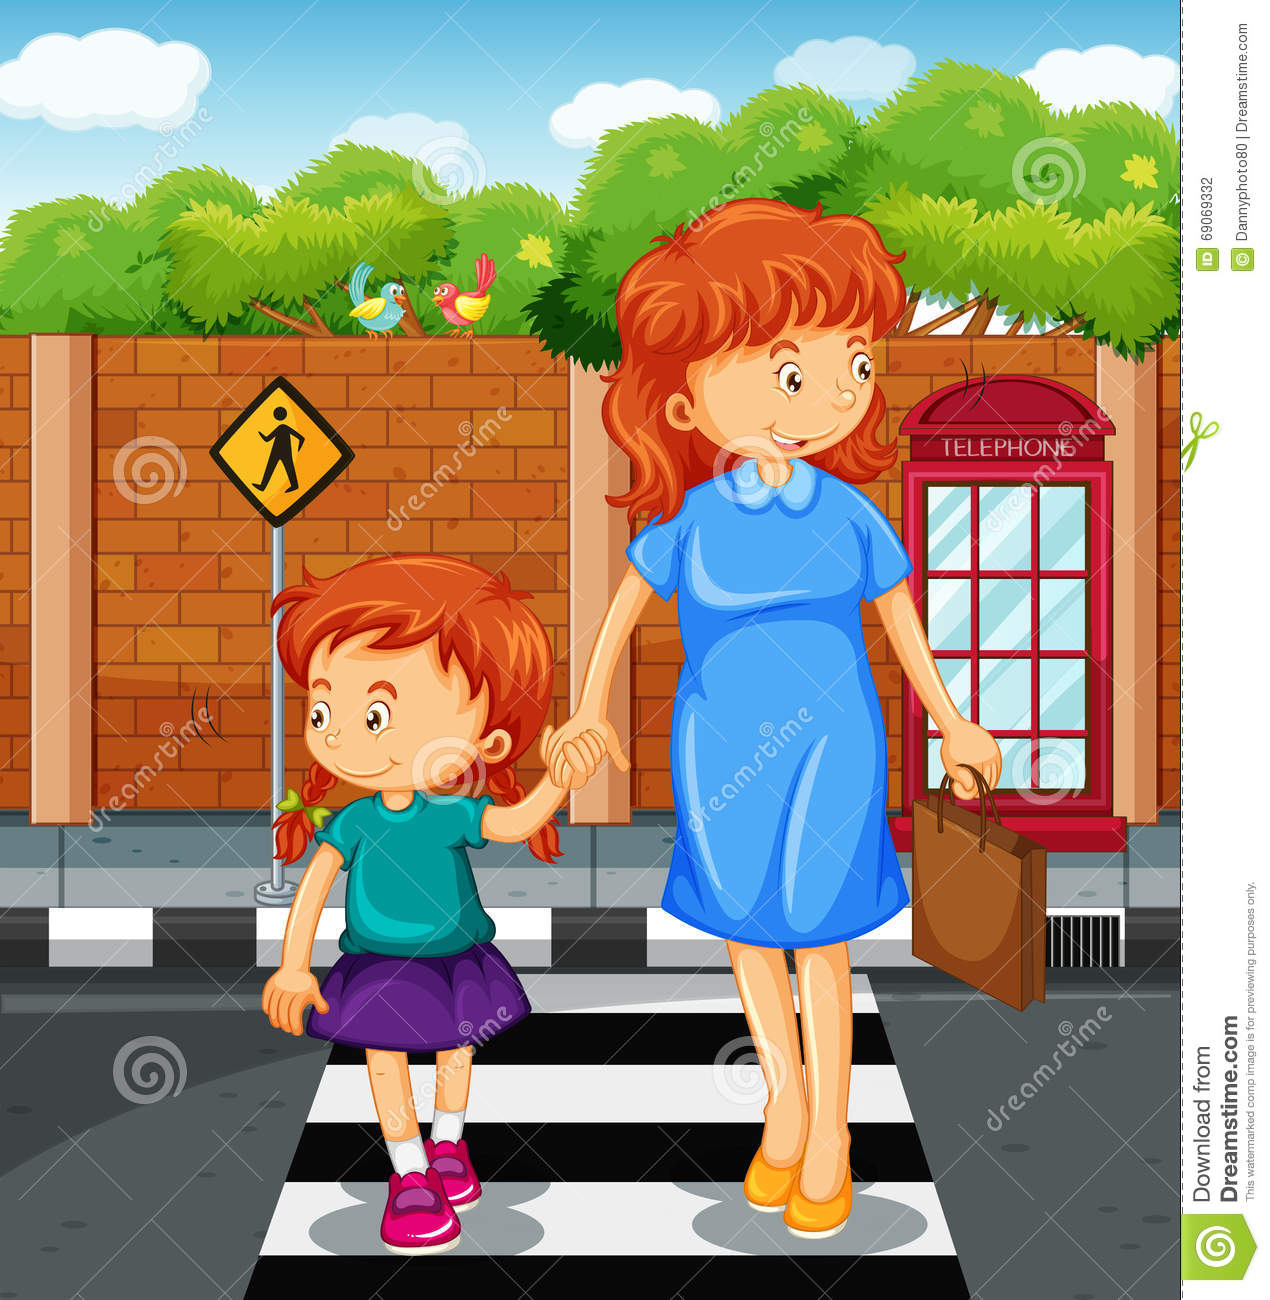 Road Crossing Clipart Mother And Girl Crossing The Road Stock Vector Image